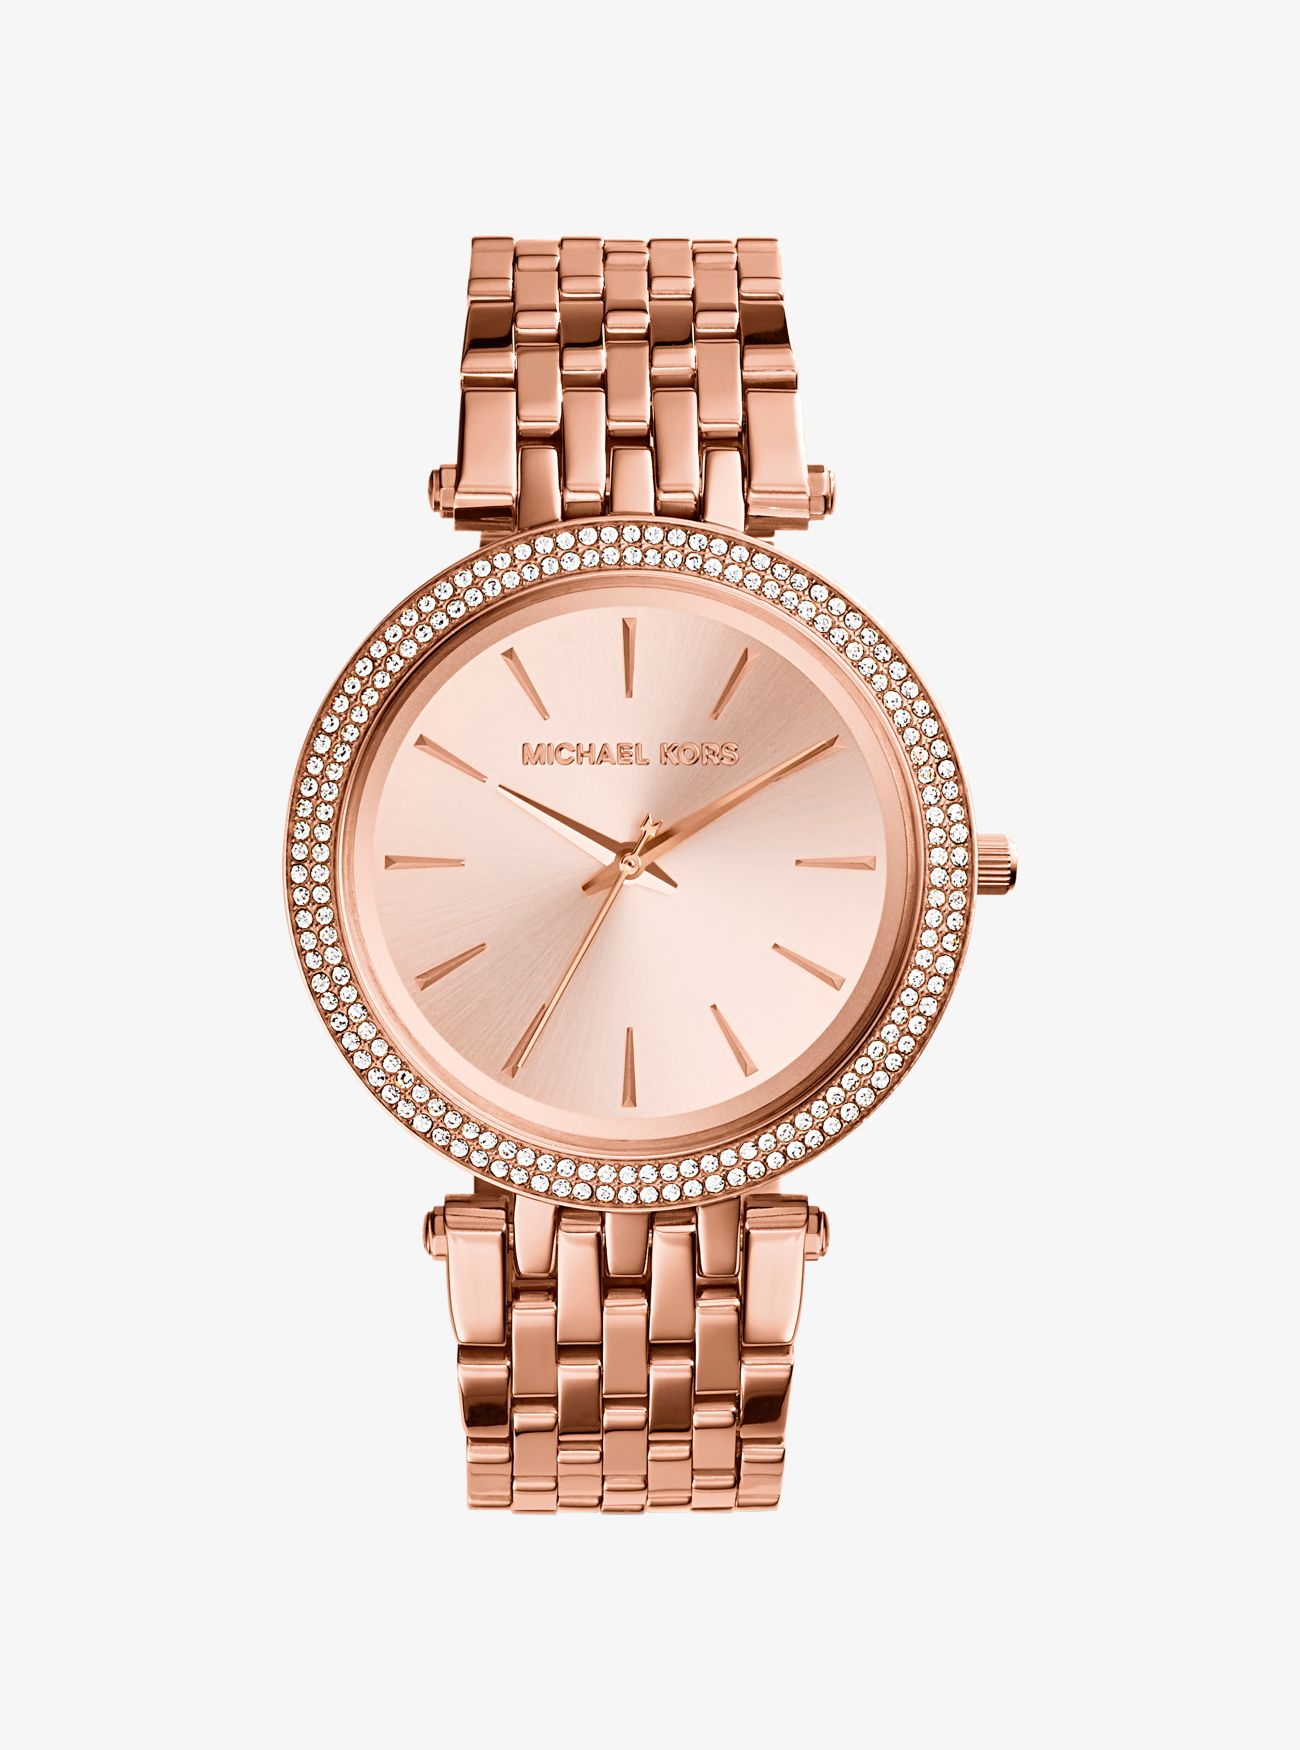 gold official watches obaku lille rose women s rosegold klar watch